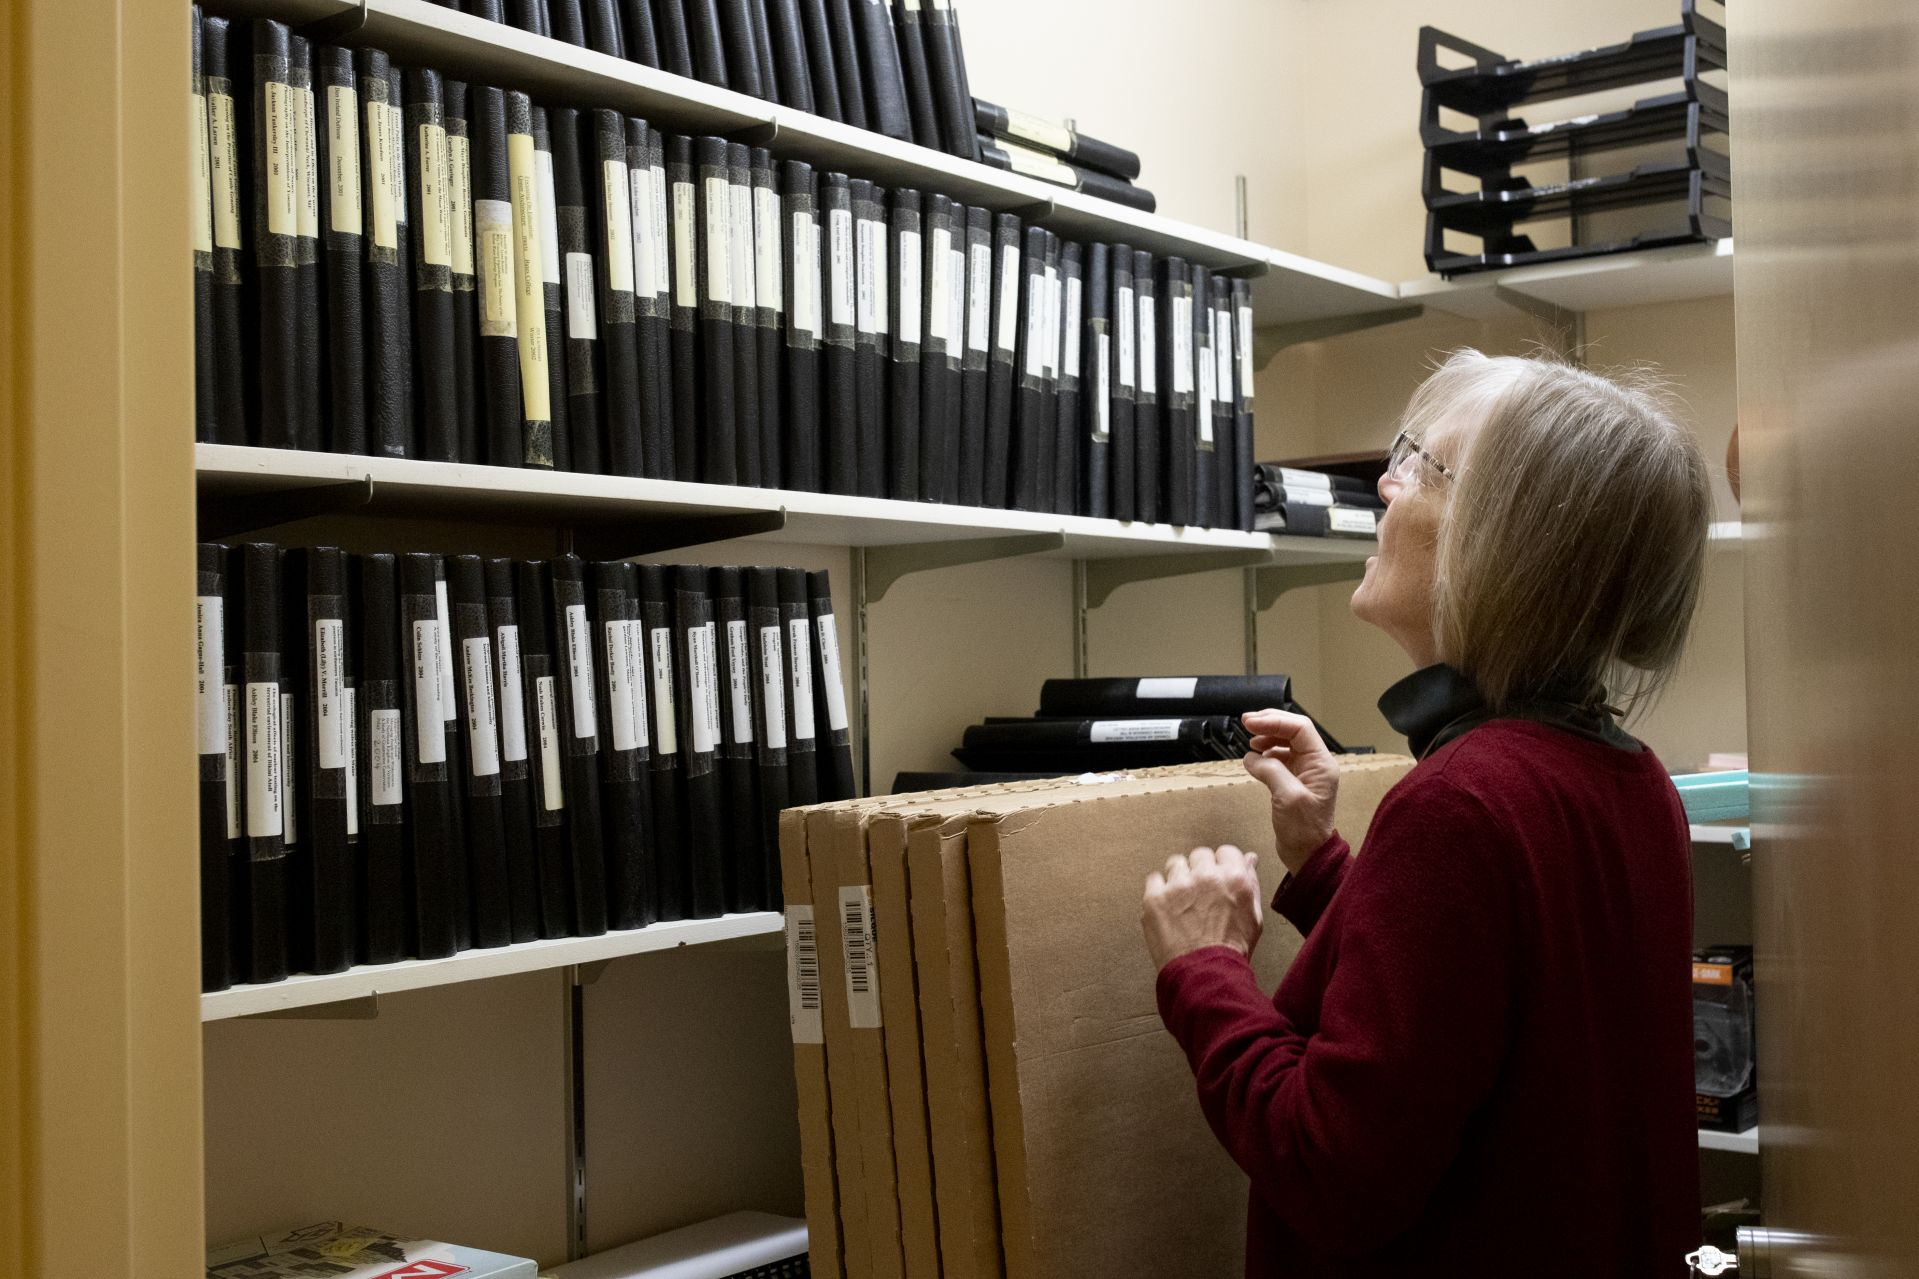 Costlow inspects thesis binders stored in the environmental studies department. (Phyllis Graber Jensen/Bates College)